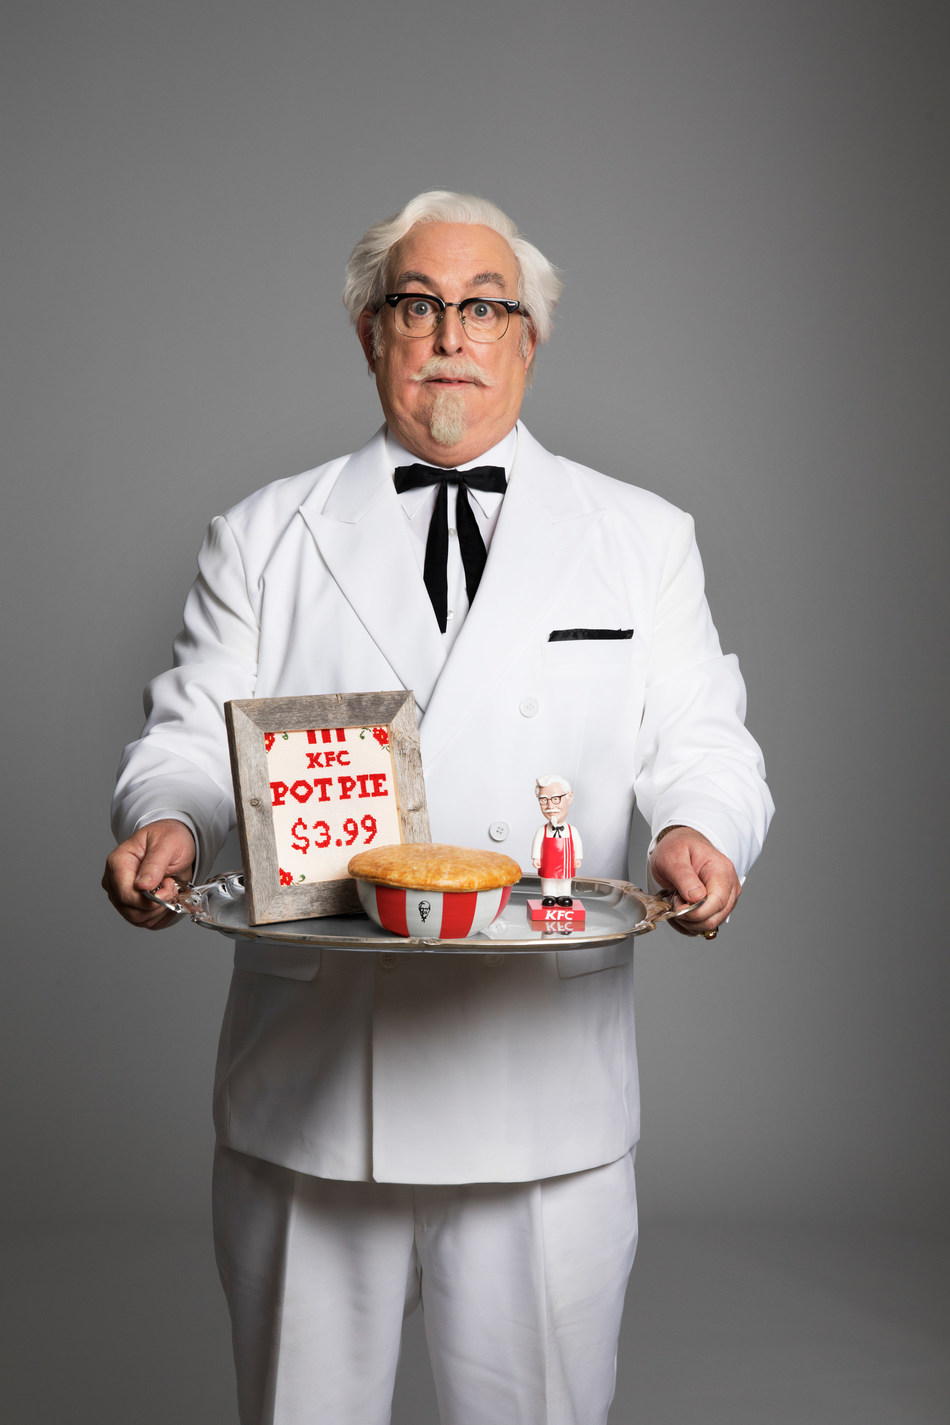 For the first time since launching its rotating Colonel campaign, Kentucky Fried Chicken has tapped an unknown actor, Christopher Boyer, to play the role of Value Colonel in its TV ads.